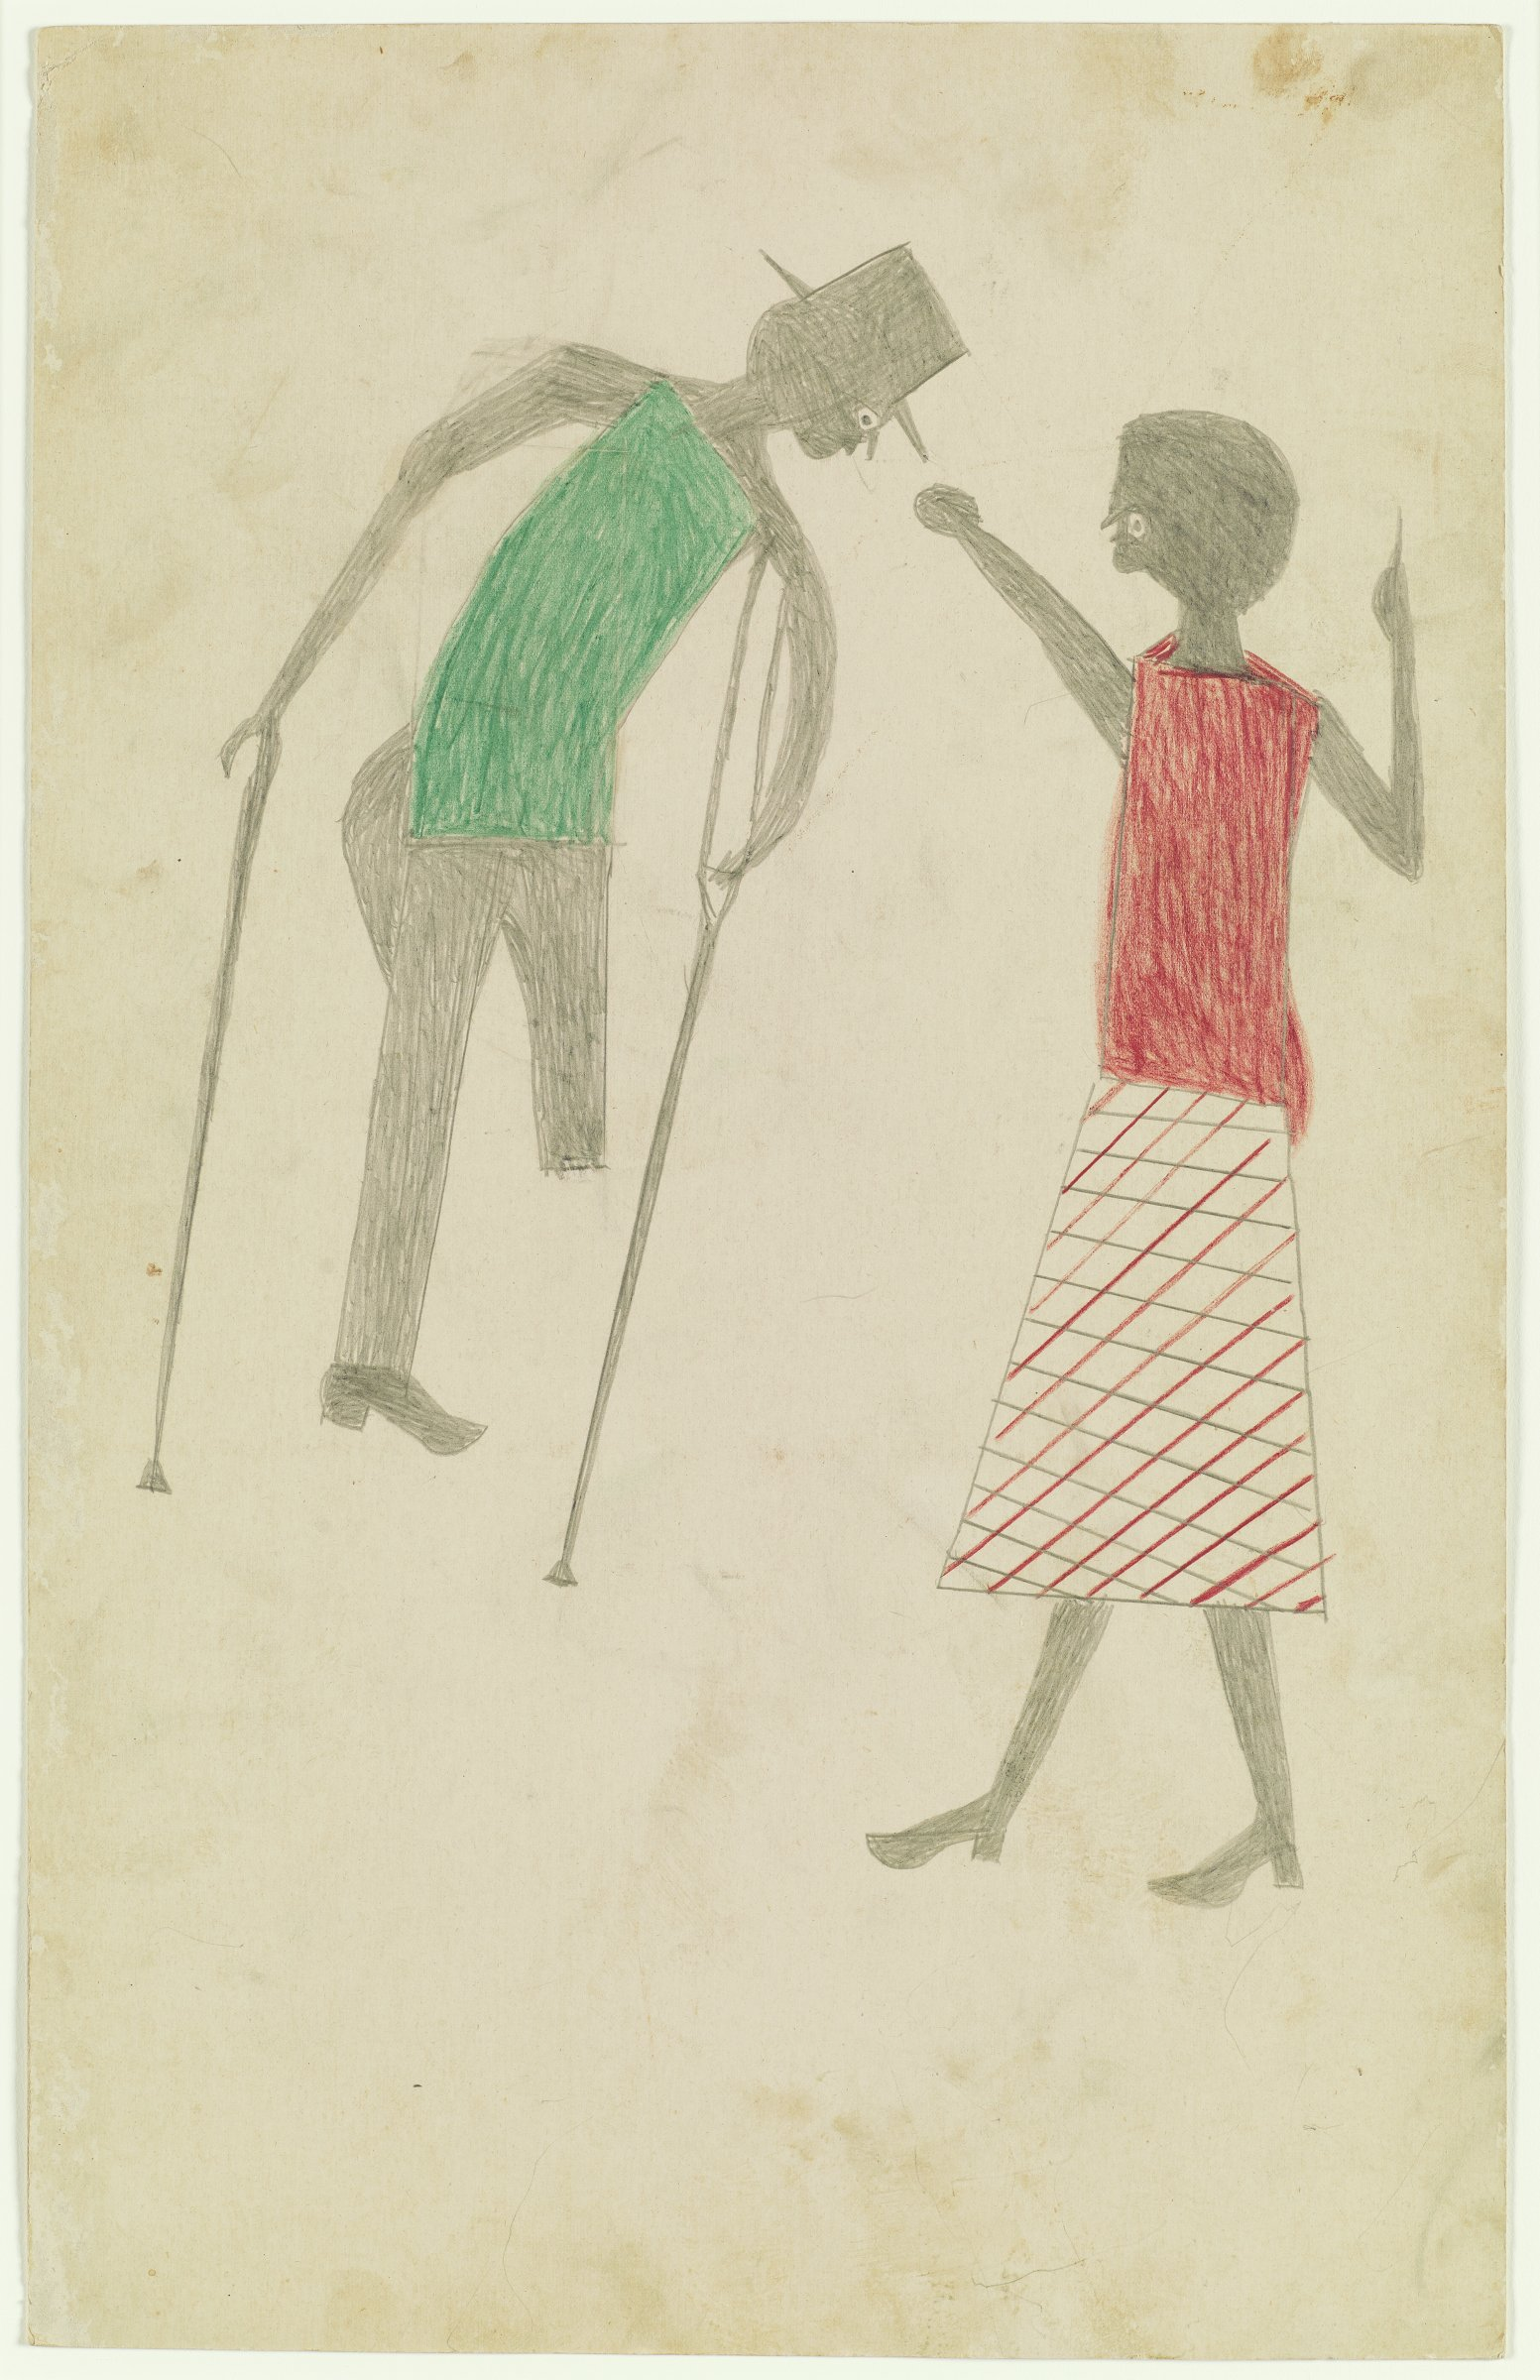 Drawing of two figures, woman on right, man on left